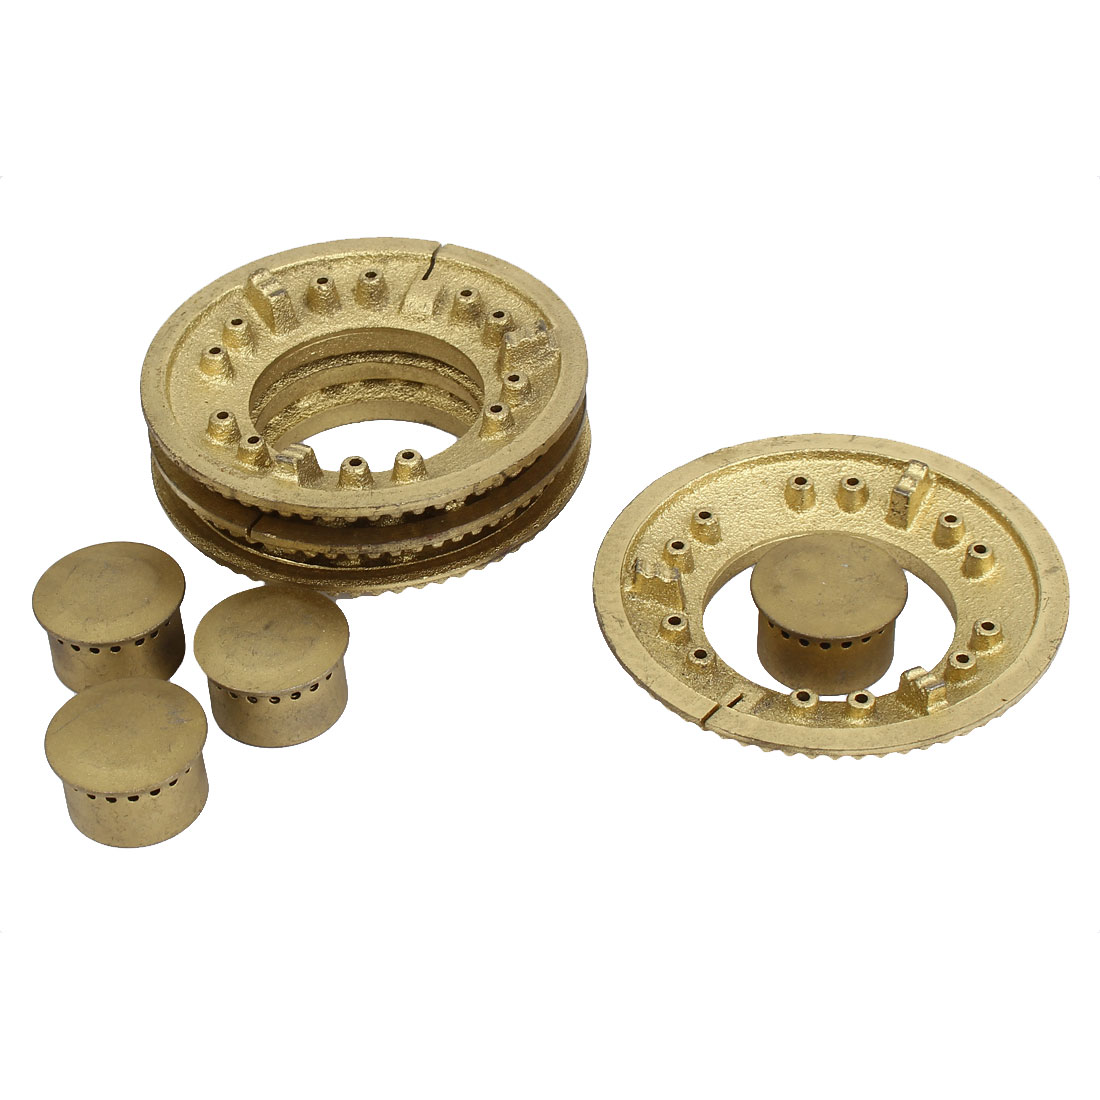 Replacement Kitchen Gas Stove Burner Cooker 100mm Dia Round Cap Gold Tone 4 Set